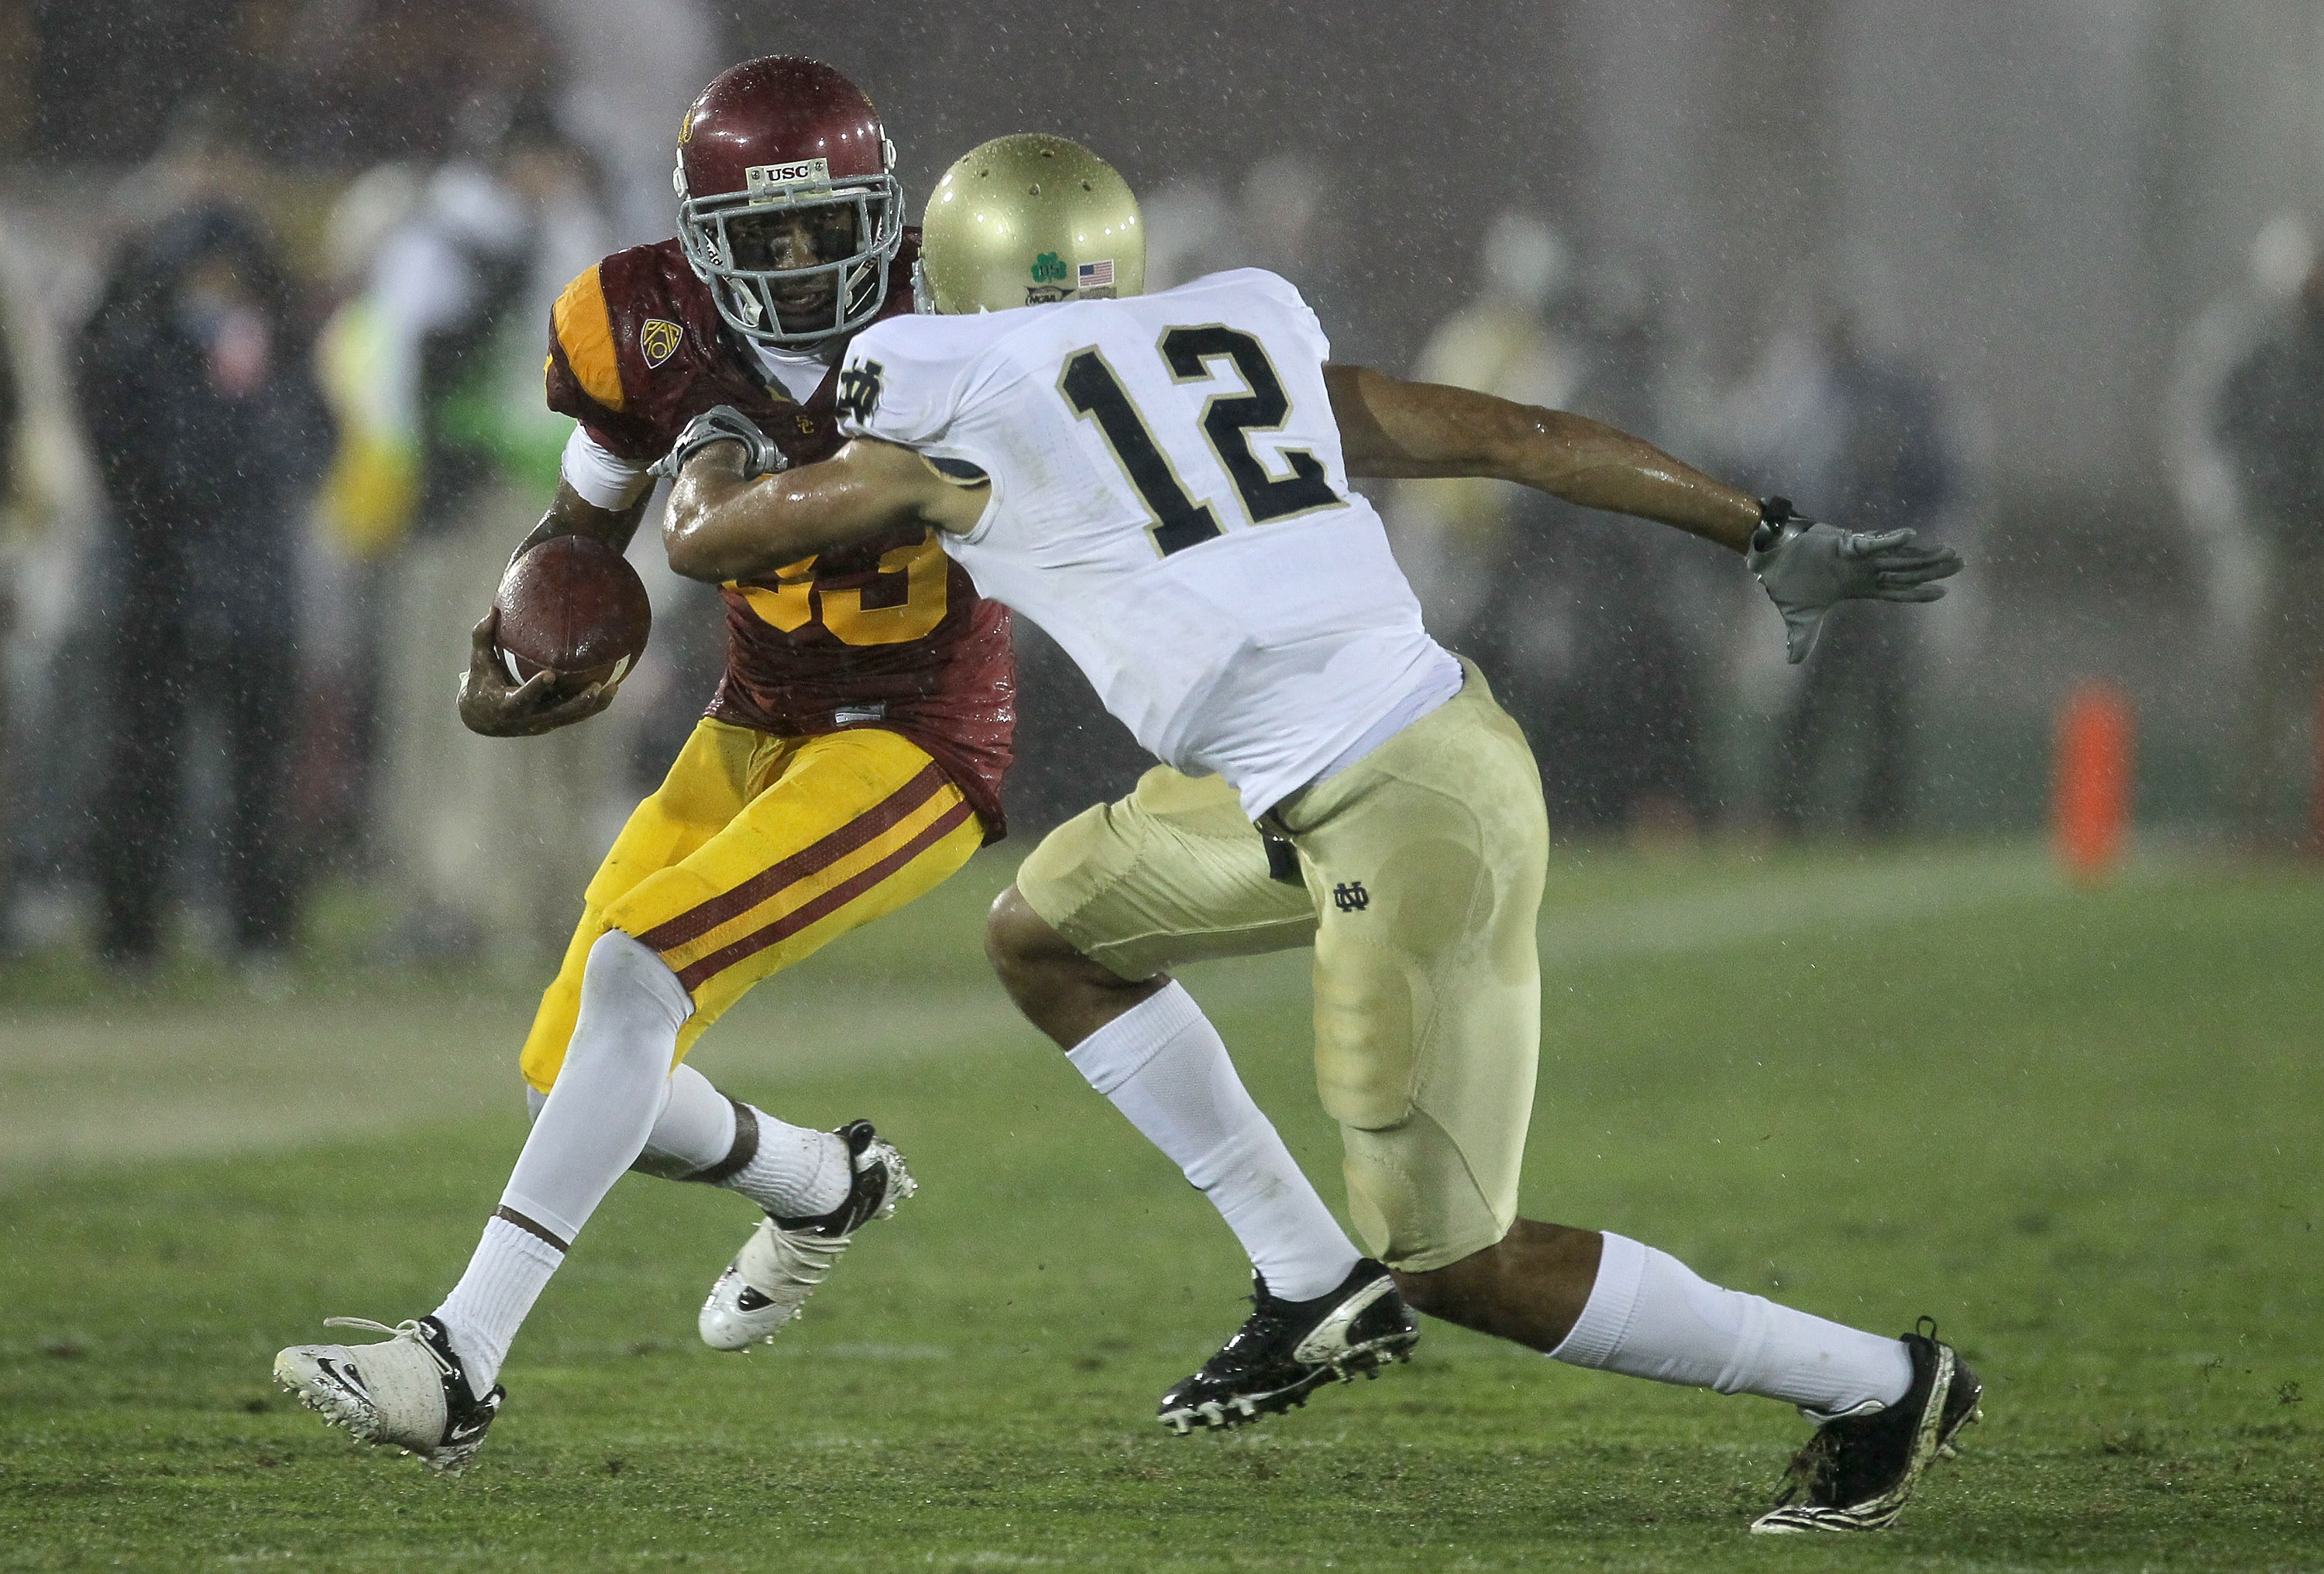 LOS ANGELES, CA - NOVEMBER 27:  Wide receiver Ronald Johsnon #83 of the USC Trojans carries the ball against cornerback Robert Blanton #12 of the Notre Dame Fighting Irish at the Los Angeles Memorial Coliseum on November 27, 2010 in Los Angeles, Californi